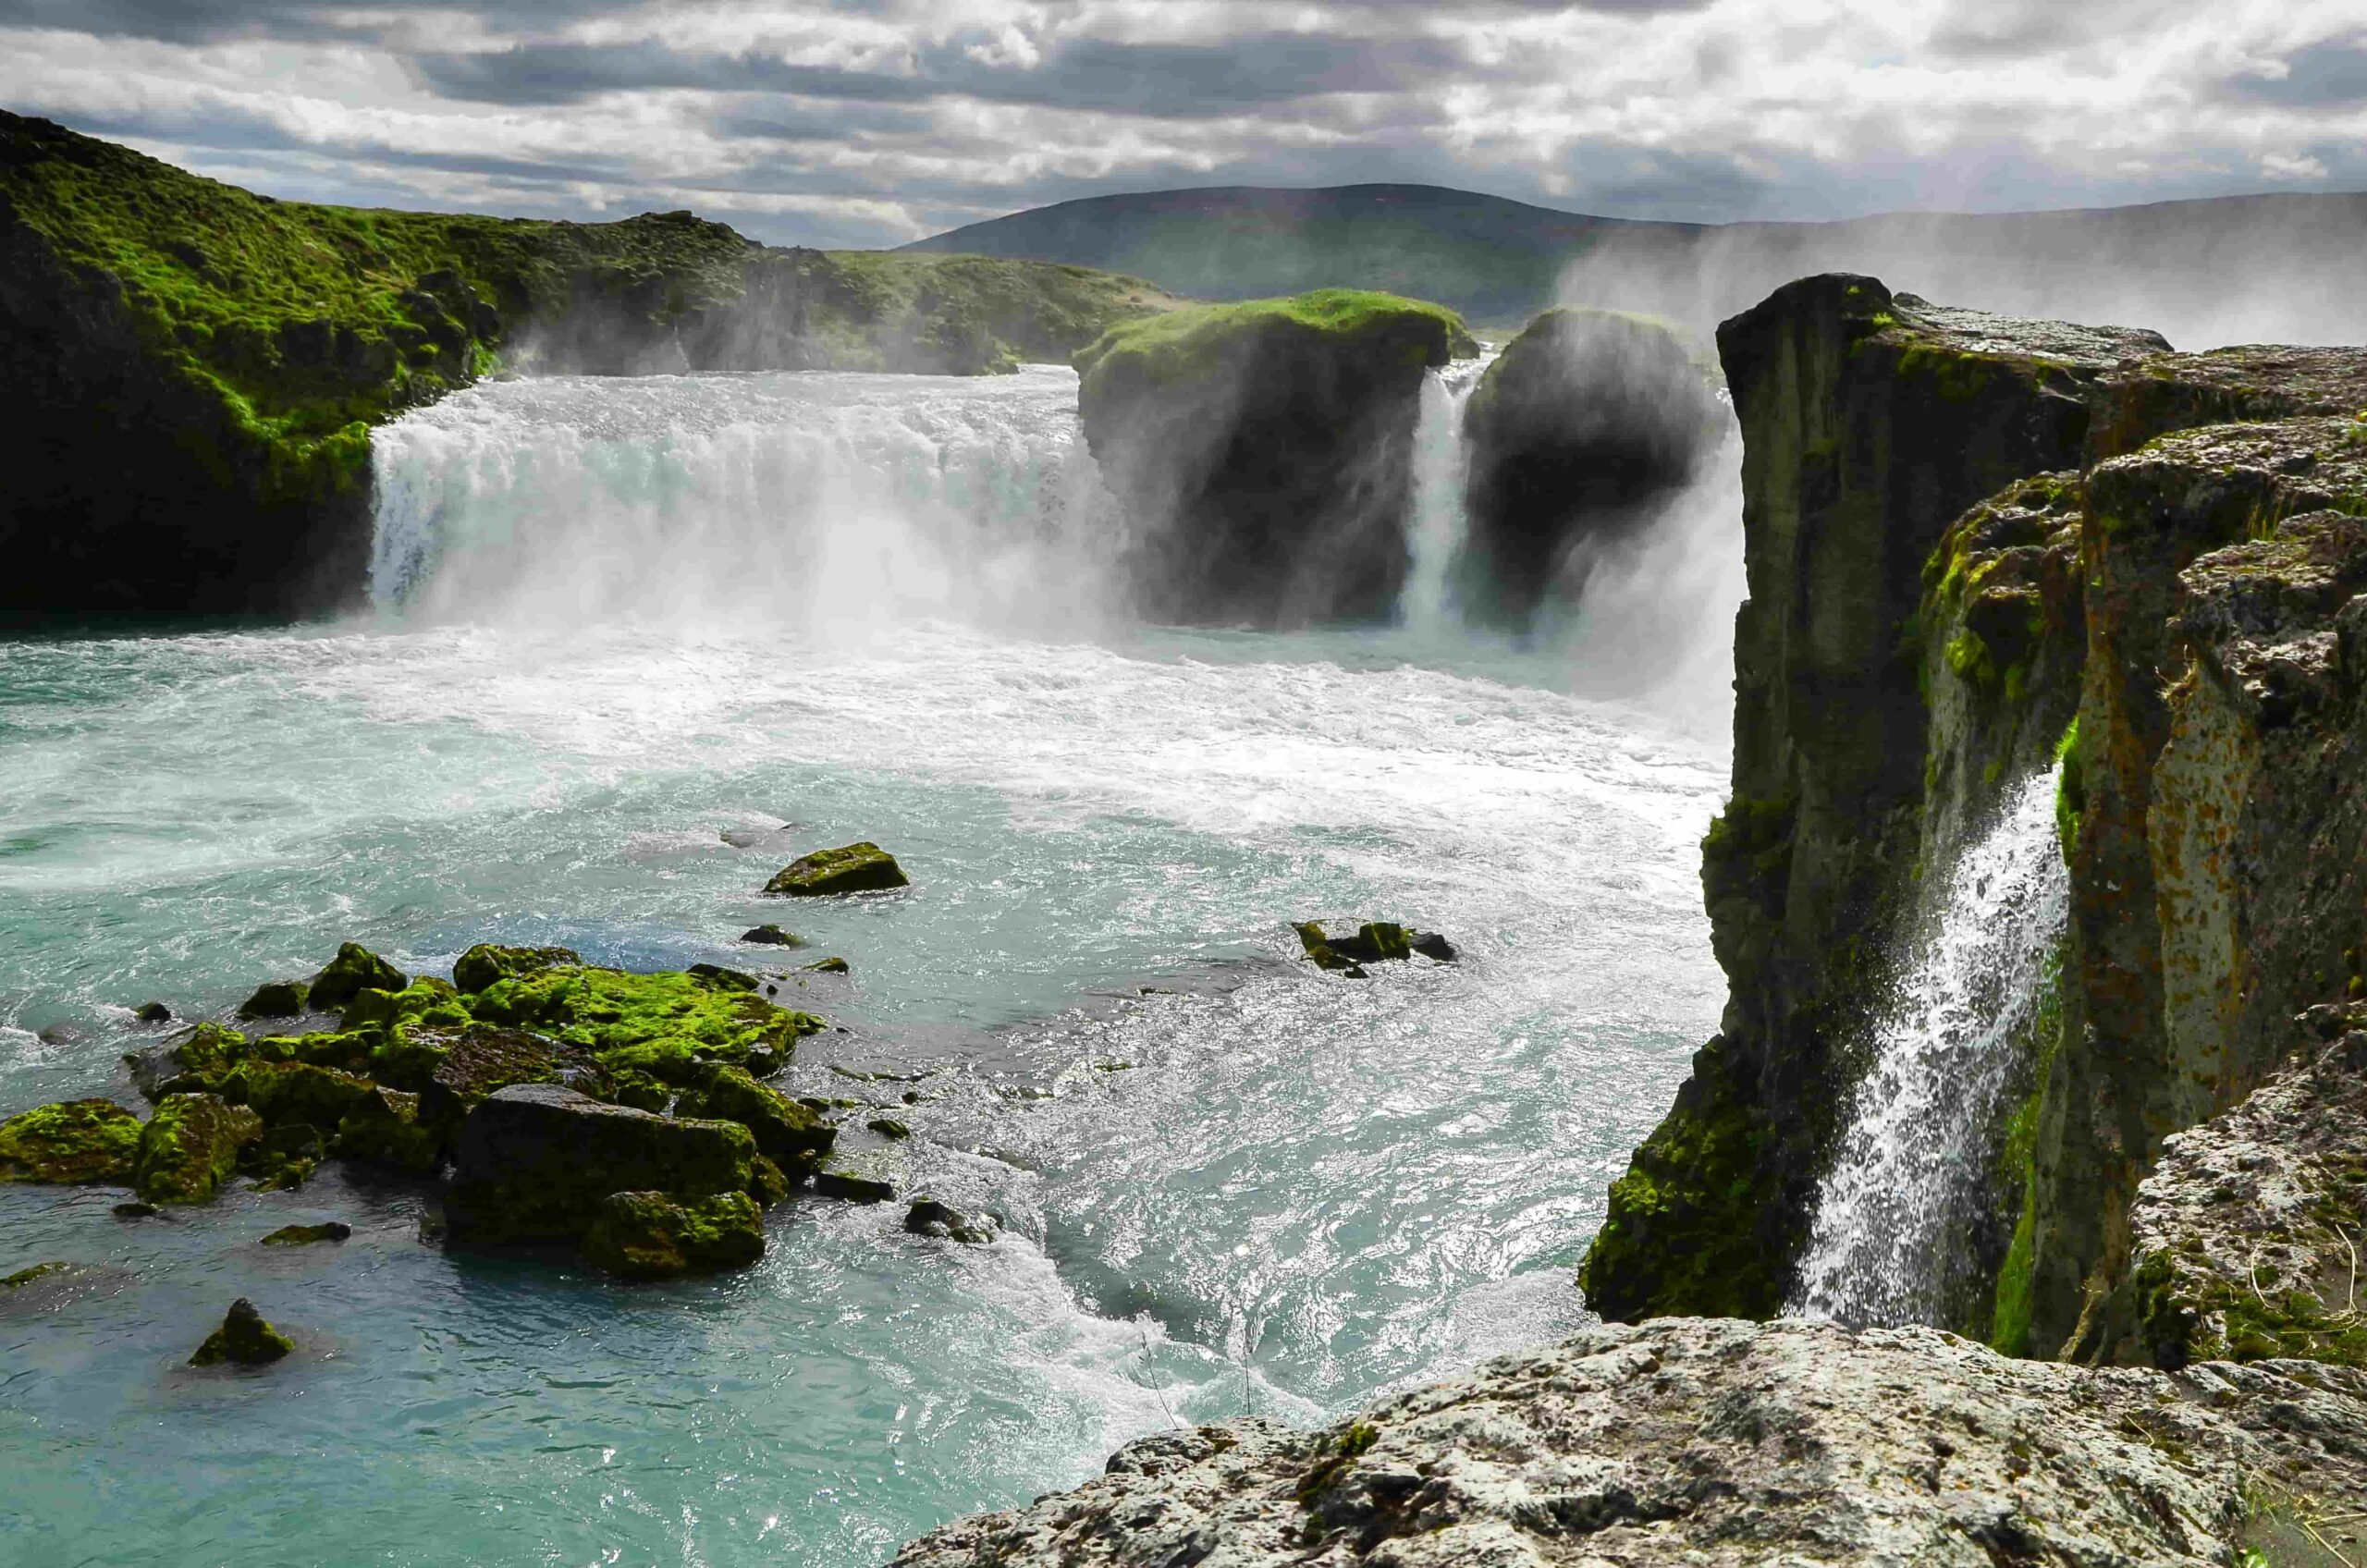 Goðafoss waterfall seen from the west side